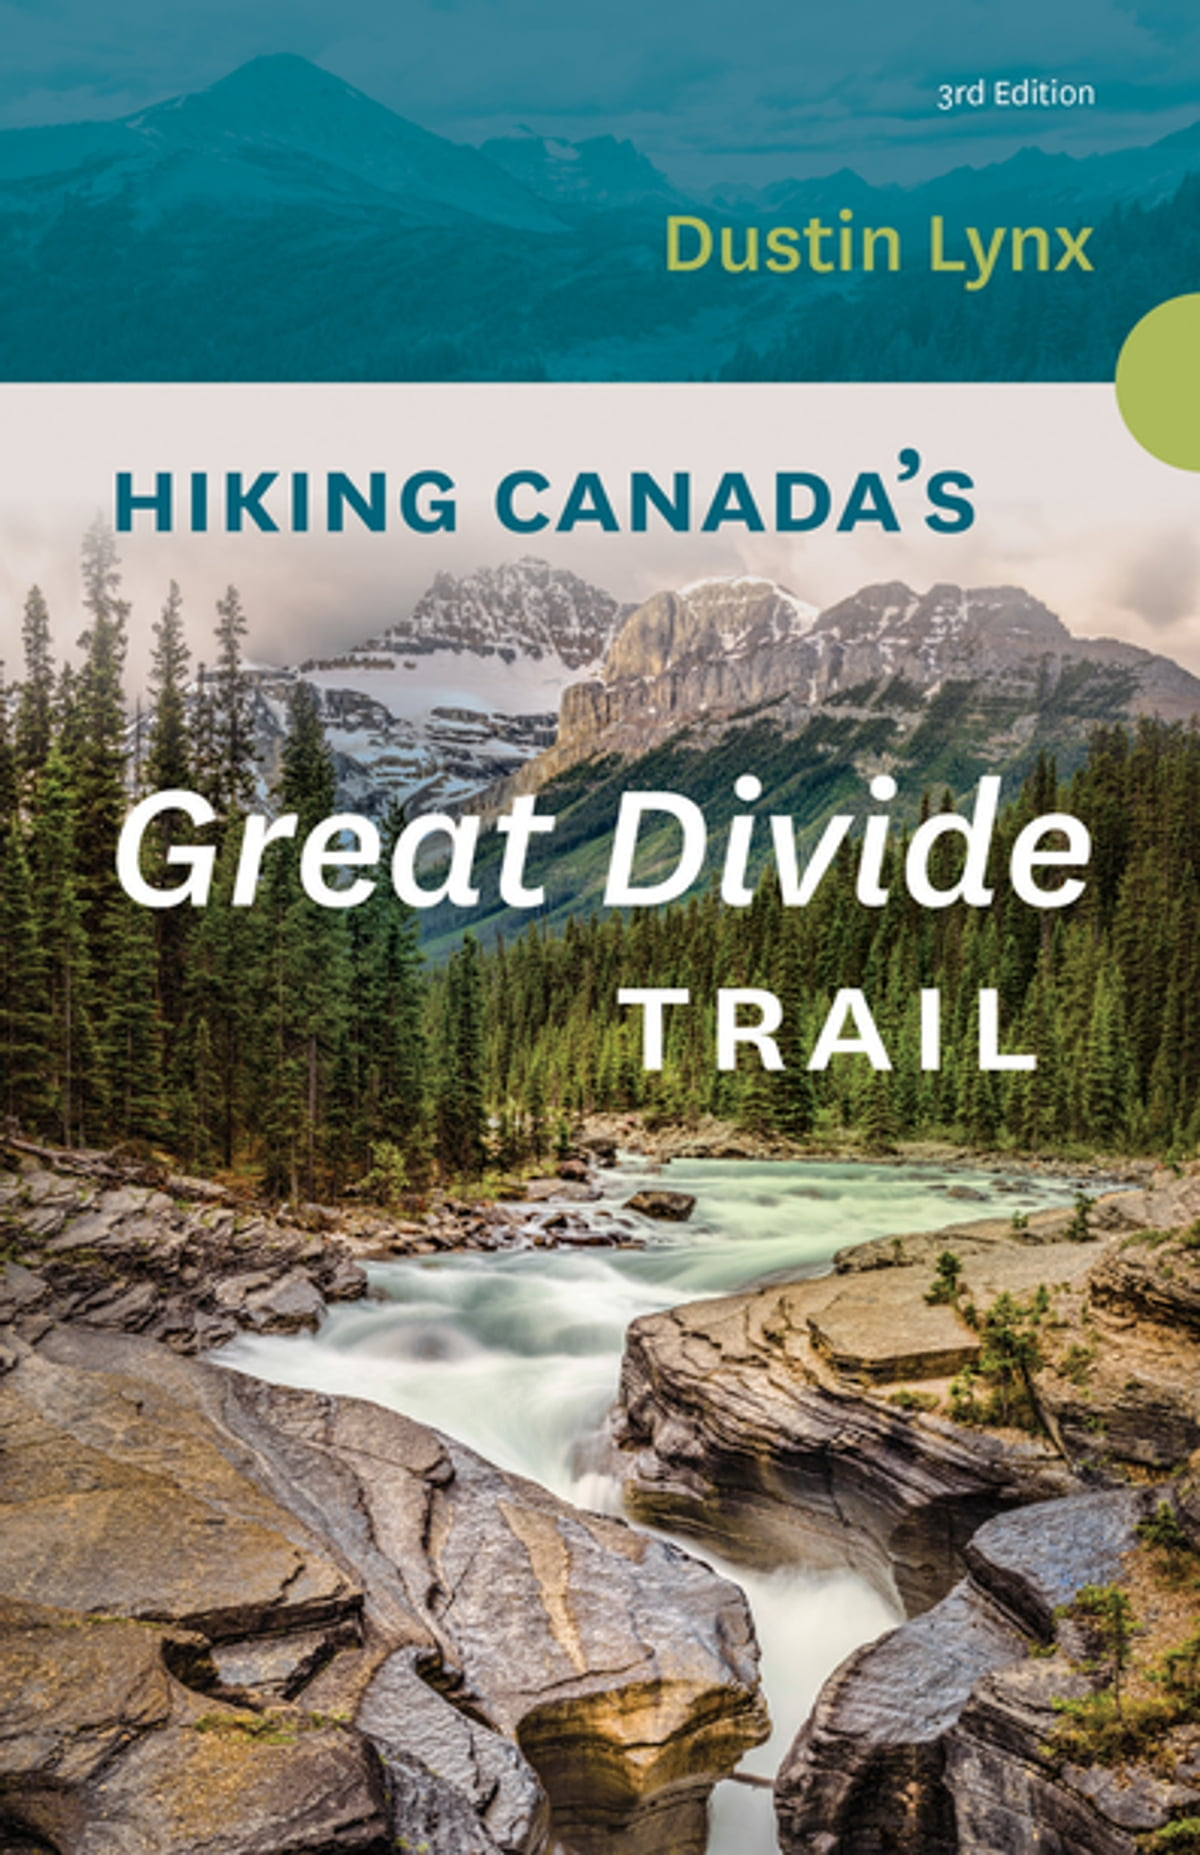 Hiking Canada's Great Divide Trail - 3rd Edition eBook by